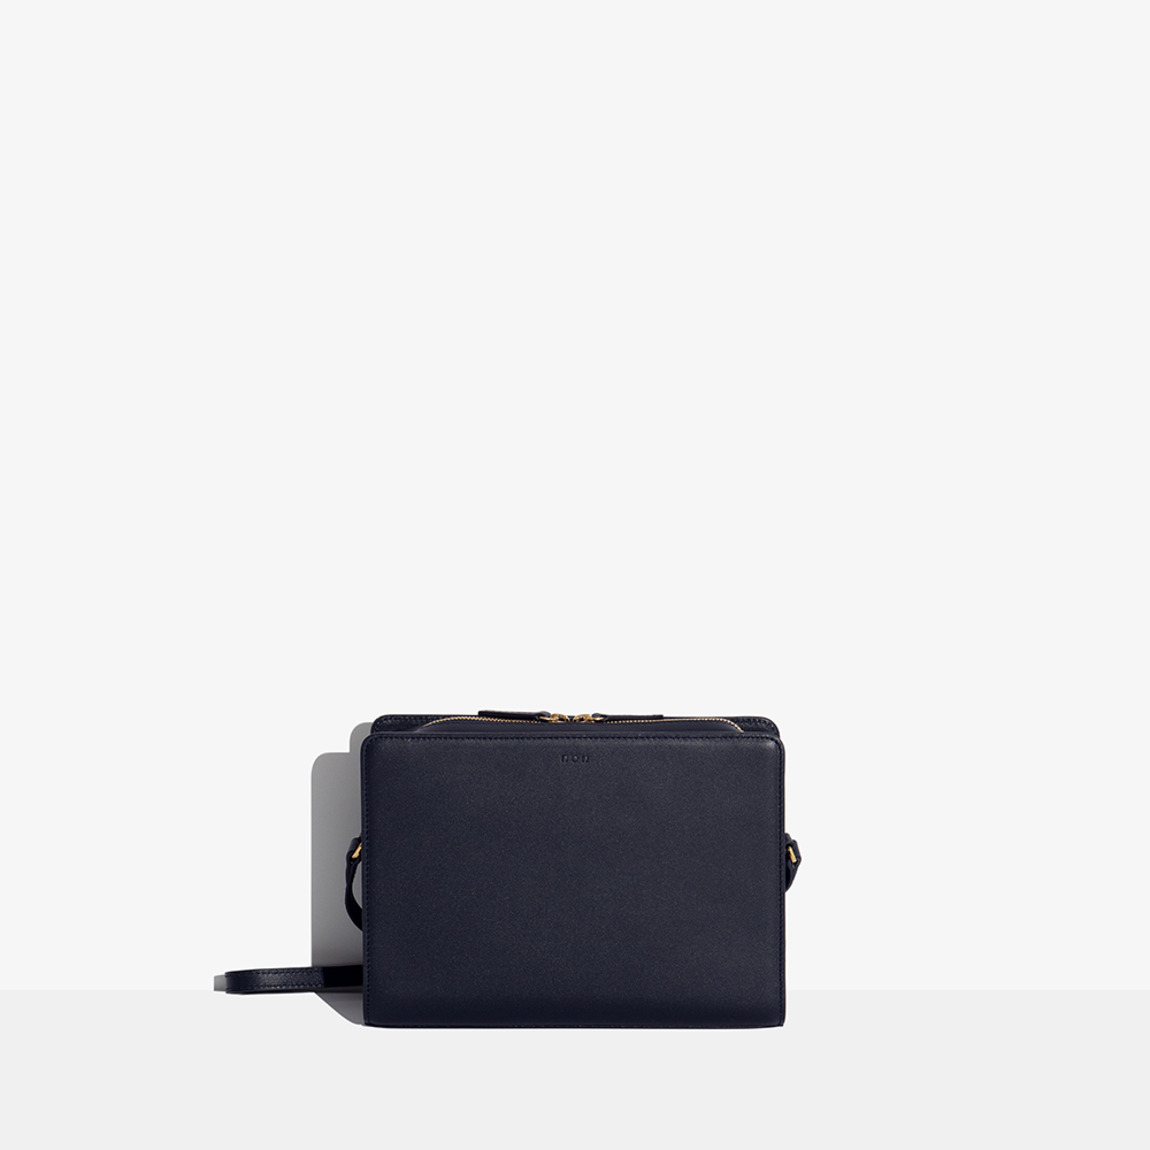 Squarebag Navy